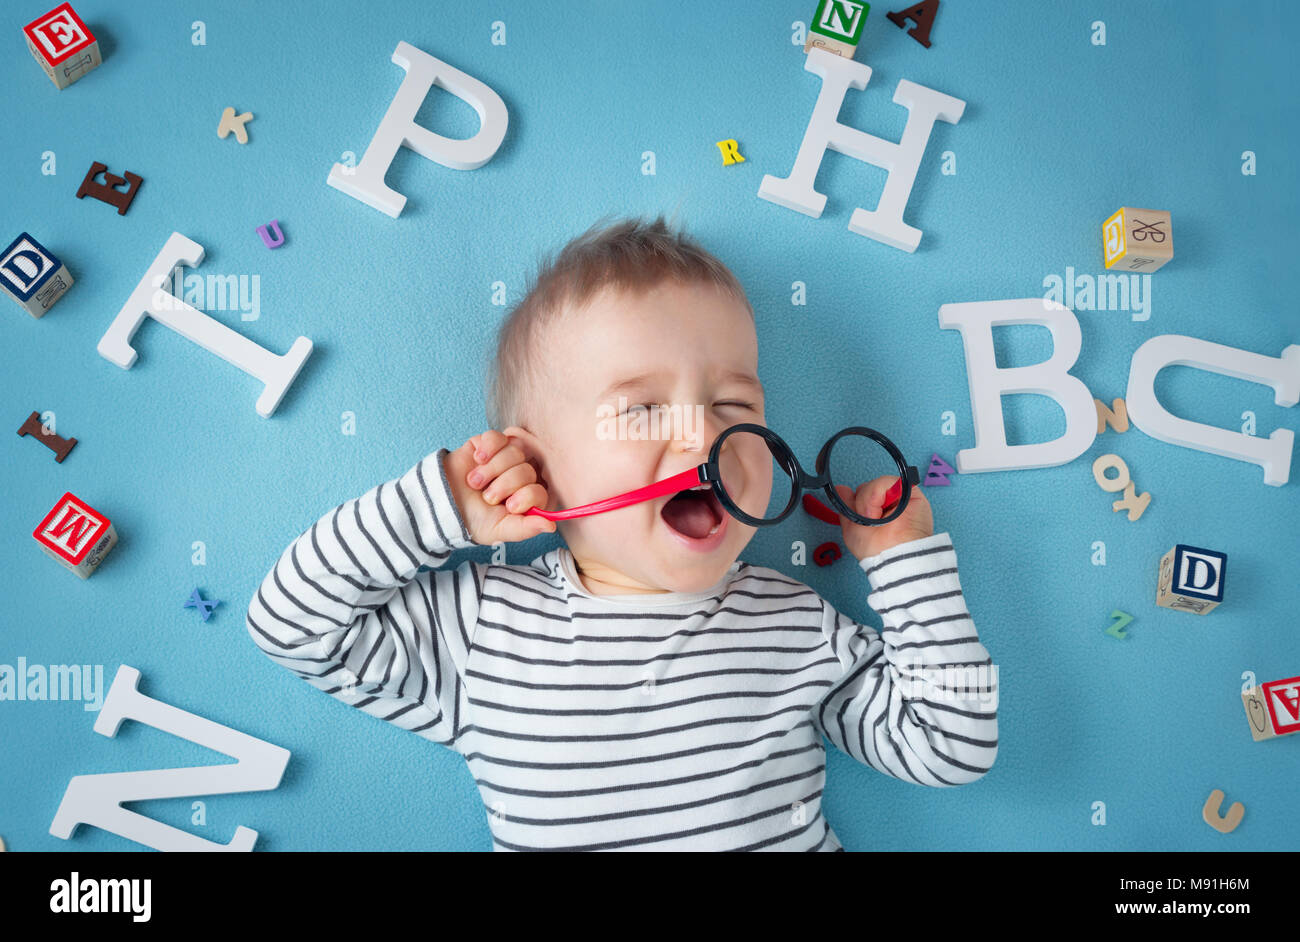 One year old child lying with spectacles and letters - Stock Image